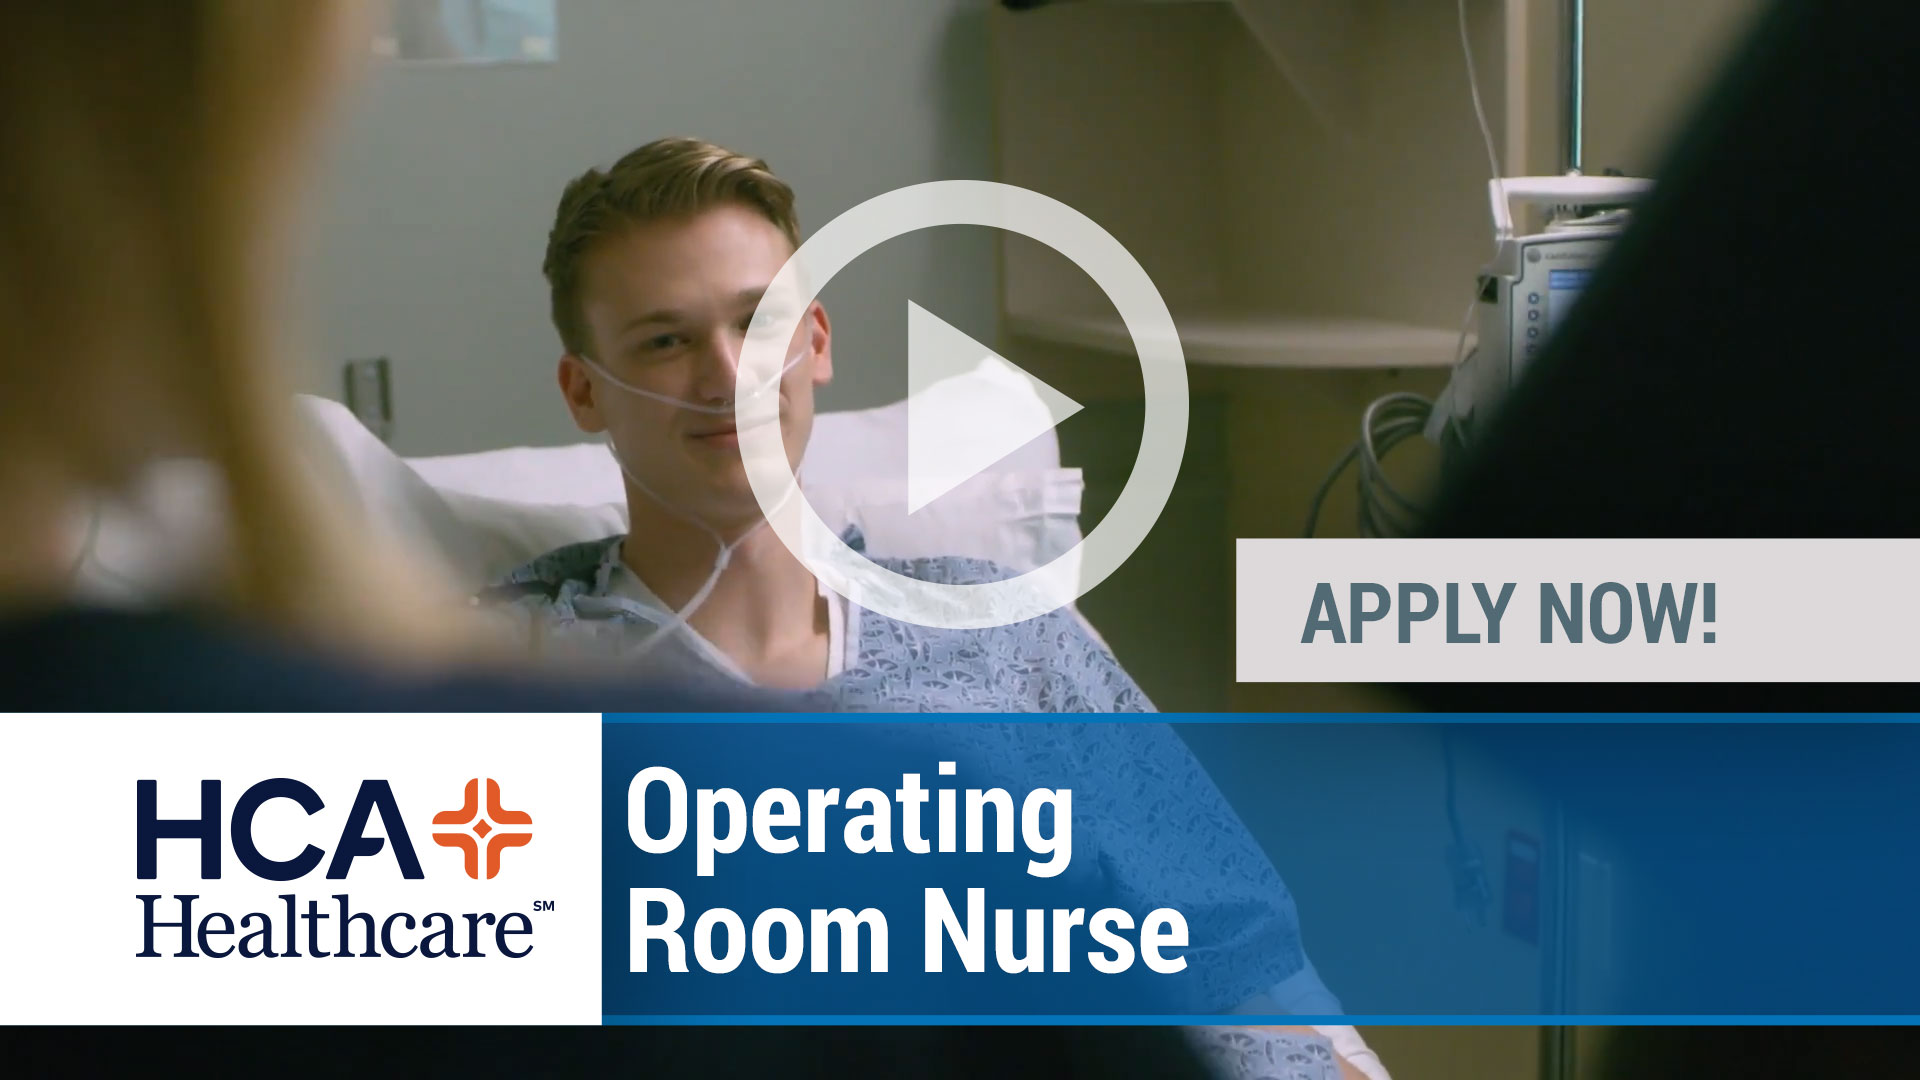 Watch our careers video for available job opening Operating Room Nurse in Largo, Florida